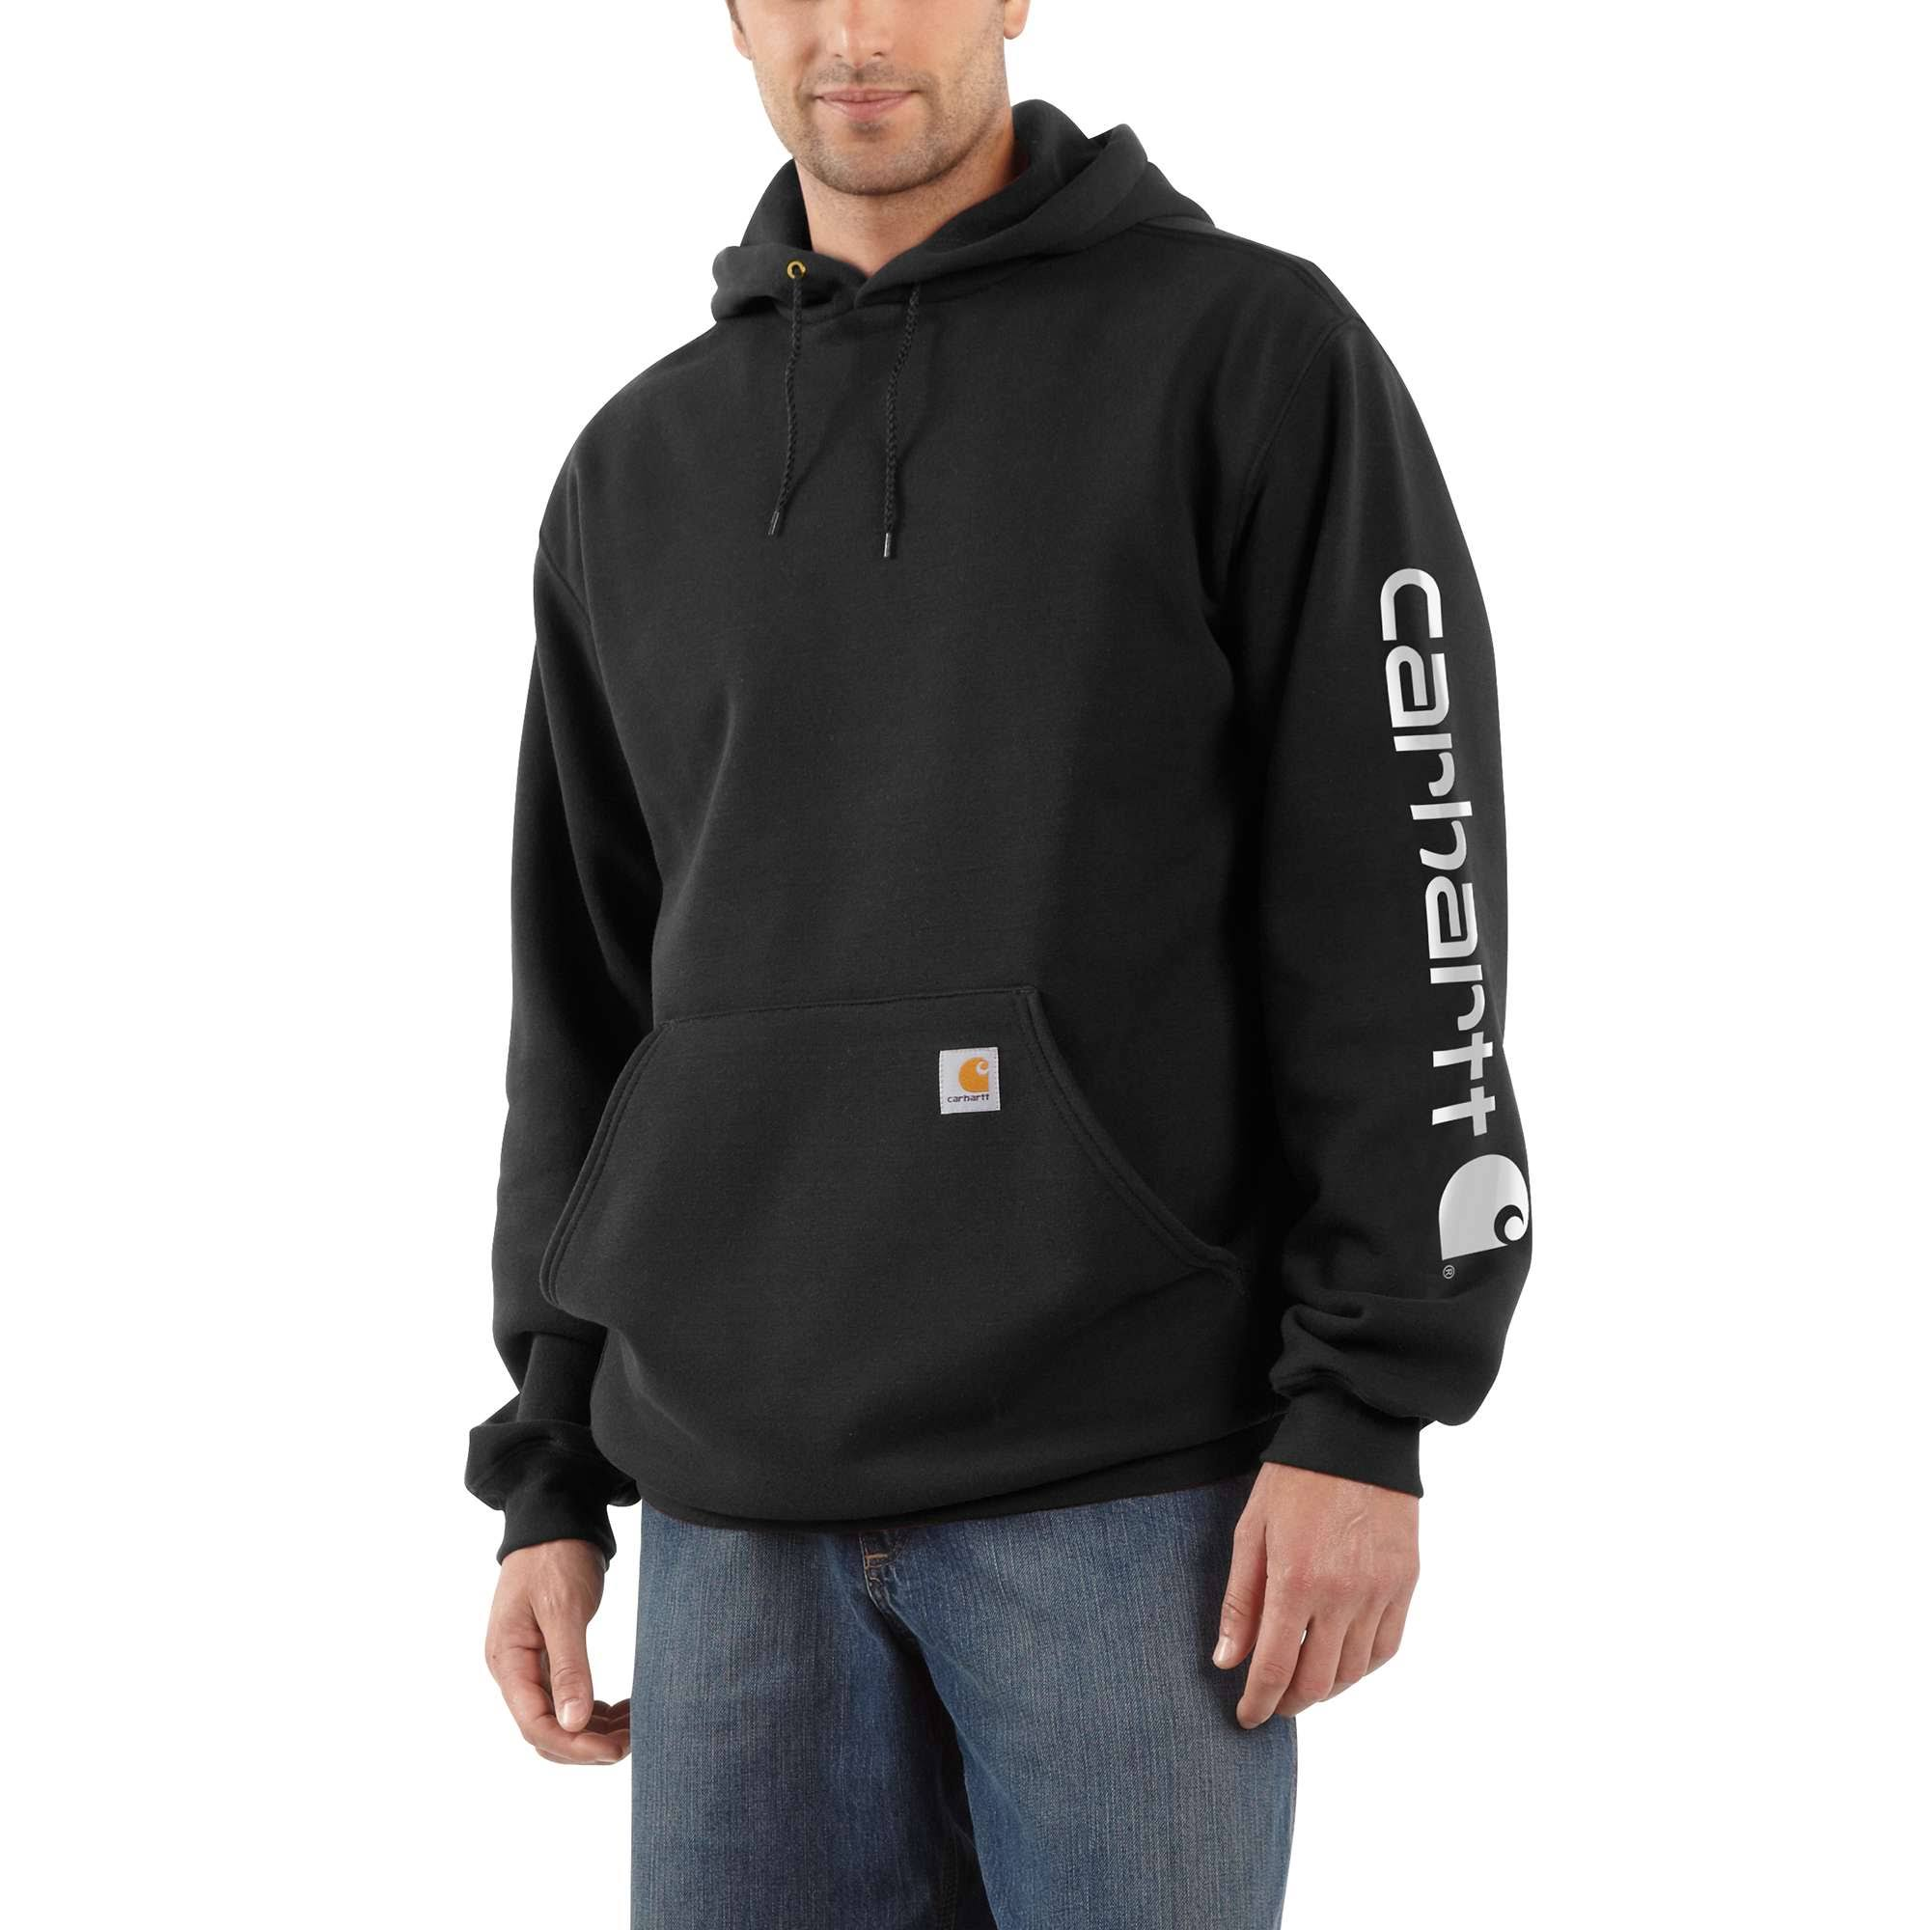 Carhartt Men's Signature Sleeve Logo Midweight Hooded Sweatshirt - Black, Large